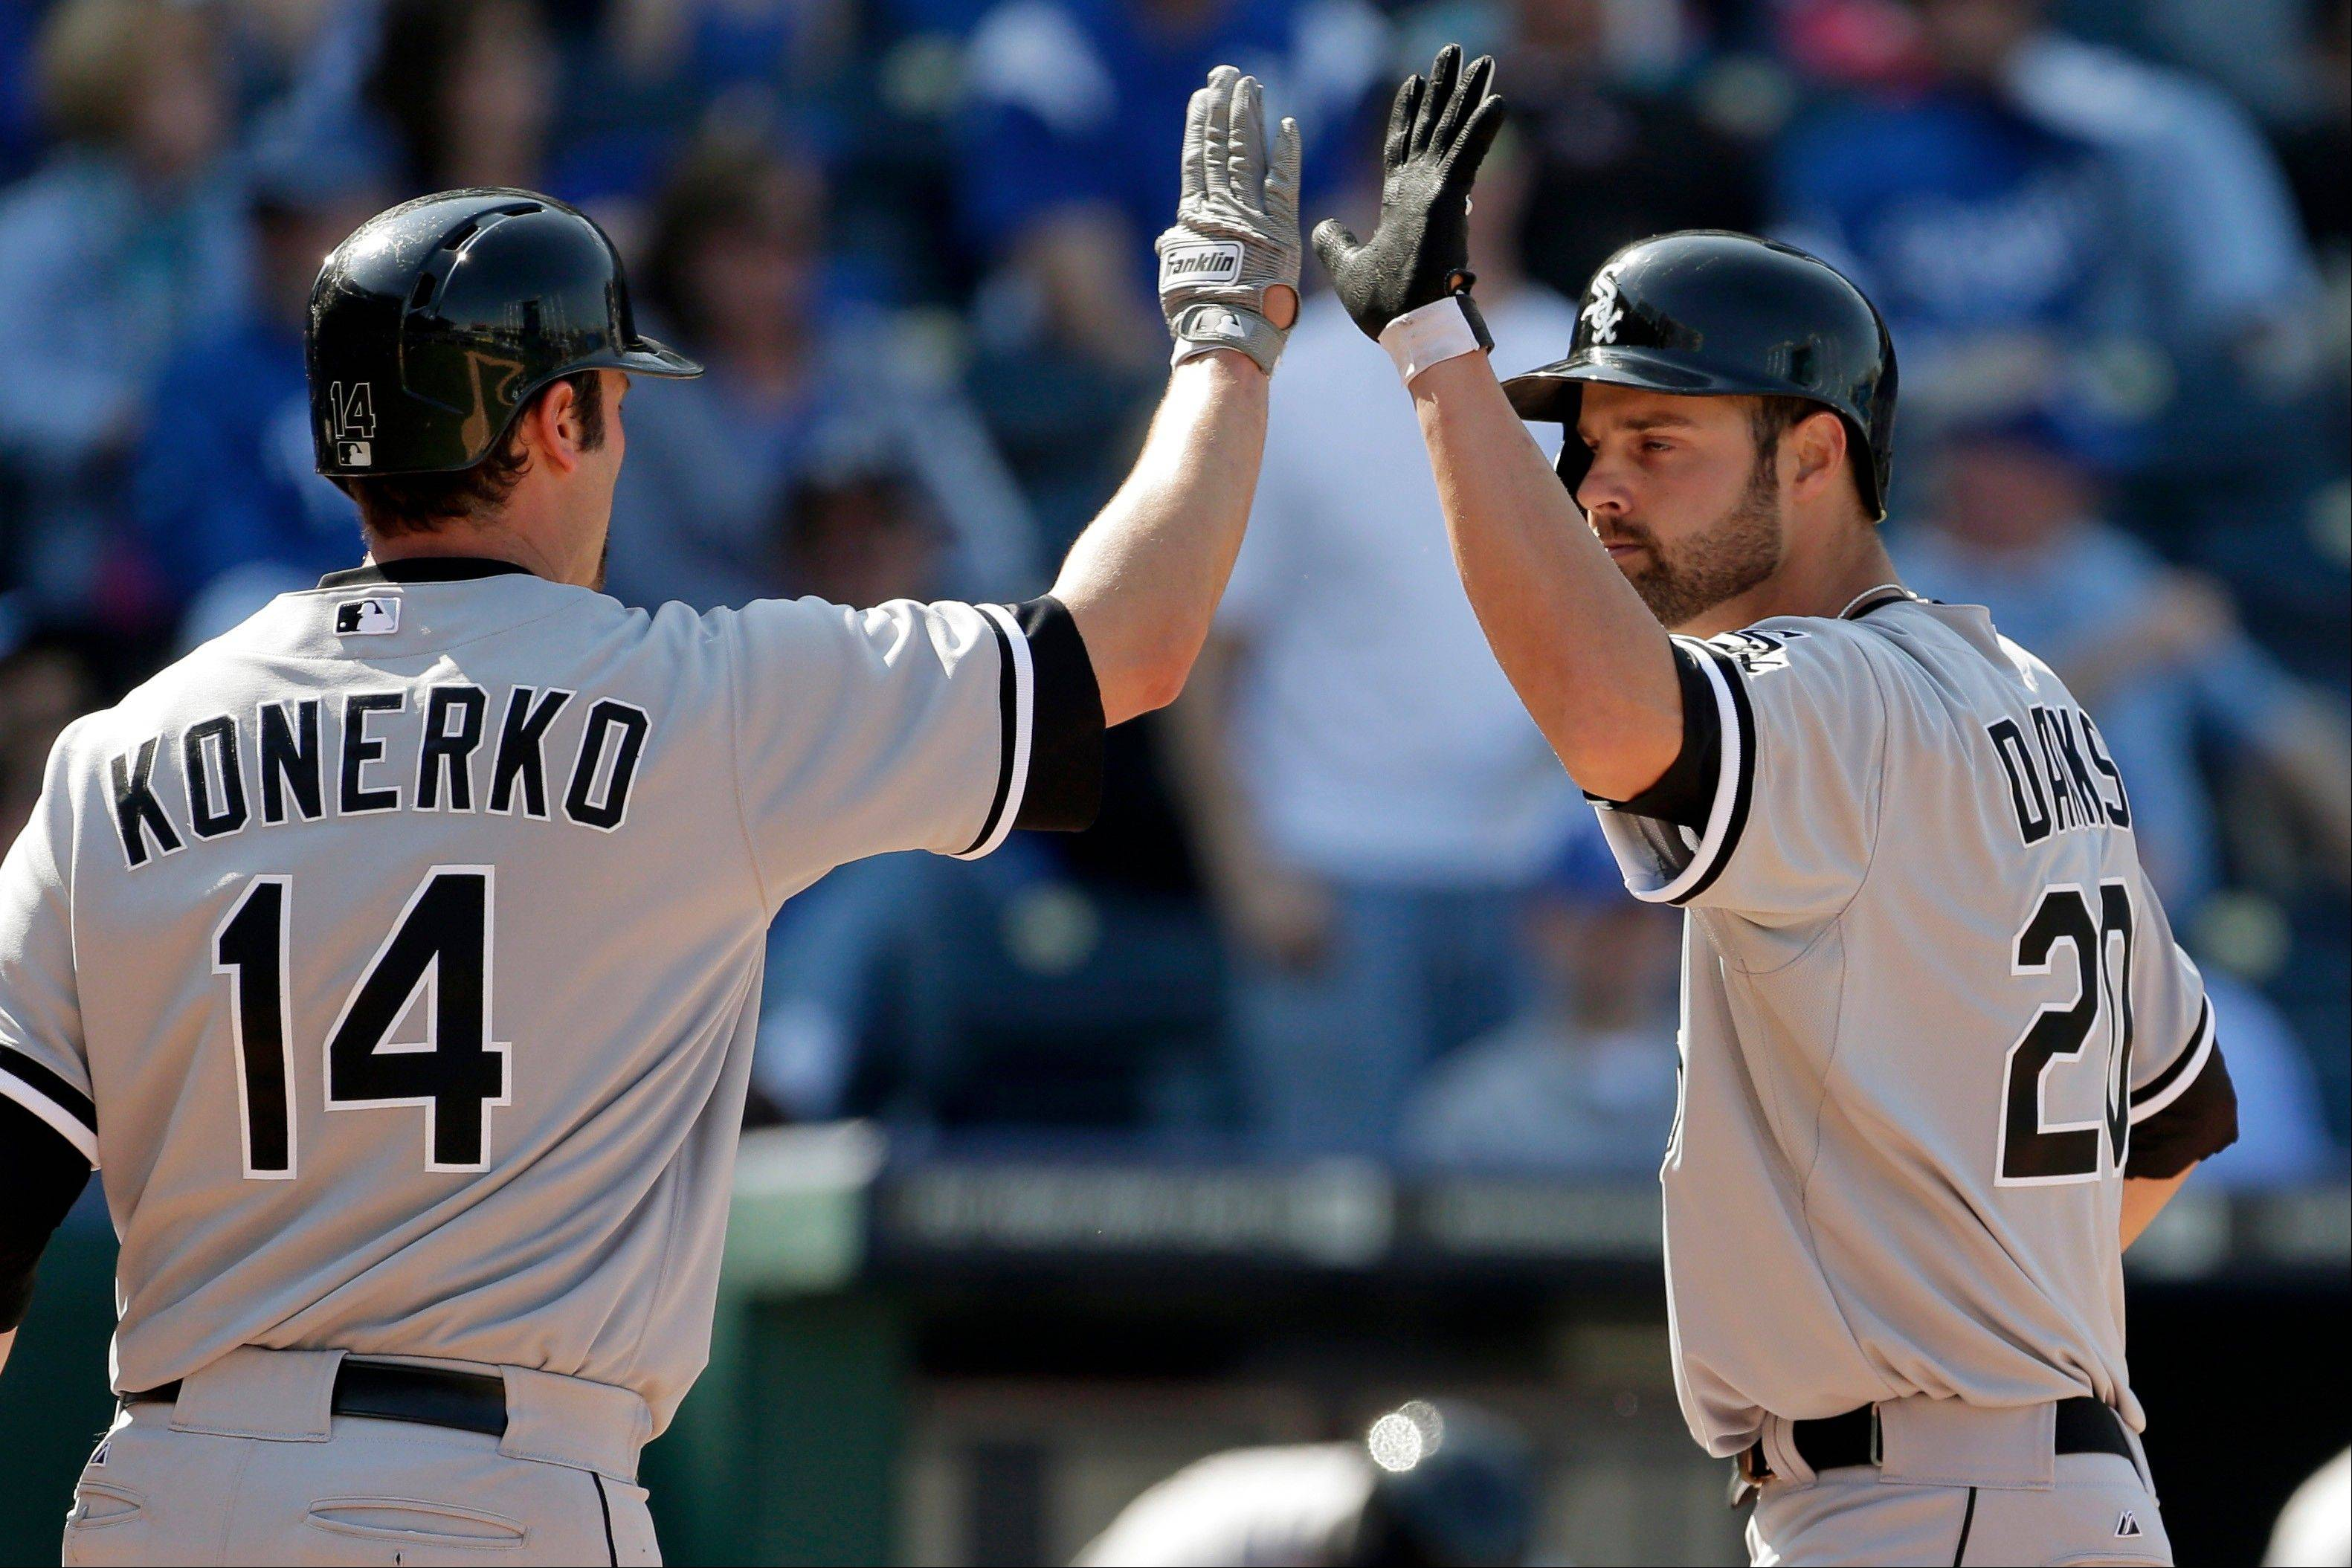 The White Sox� Jordan Danks, right, celebrates with Paul Konerko after hitting a solo home run in the 11th inning Monday against the Royals in Kansas City, Mo.